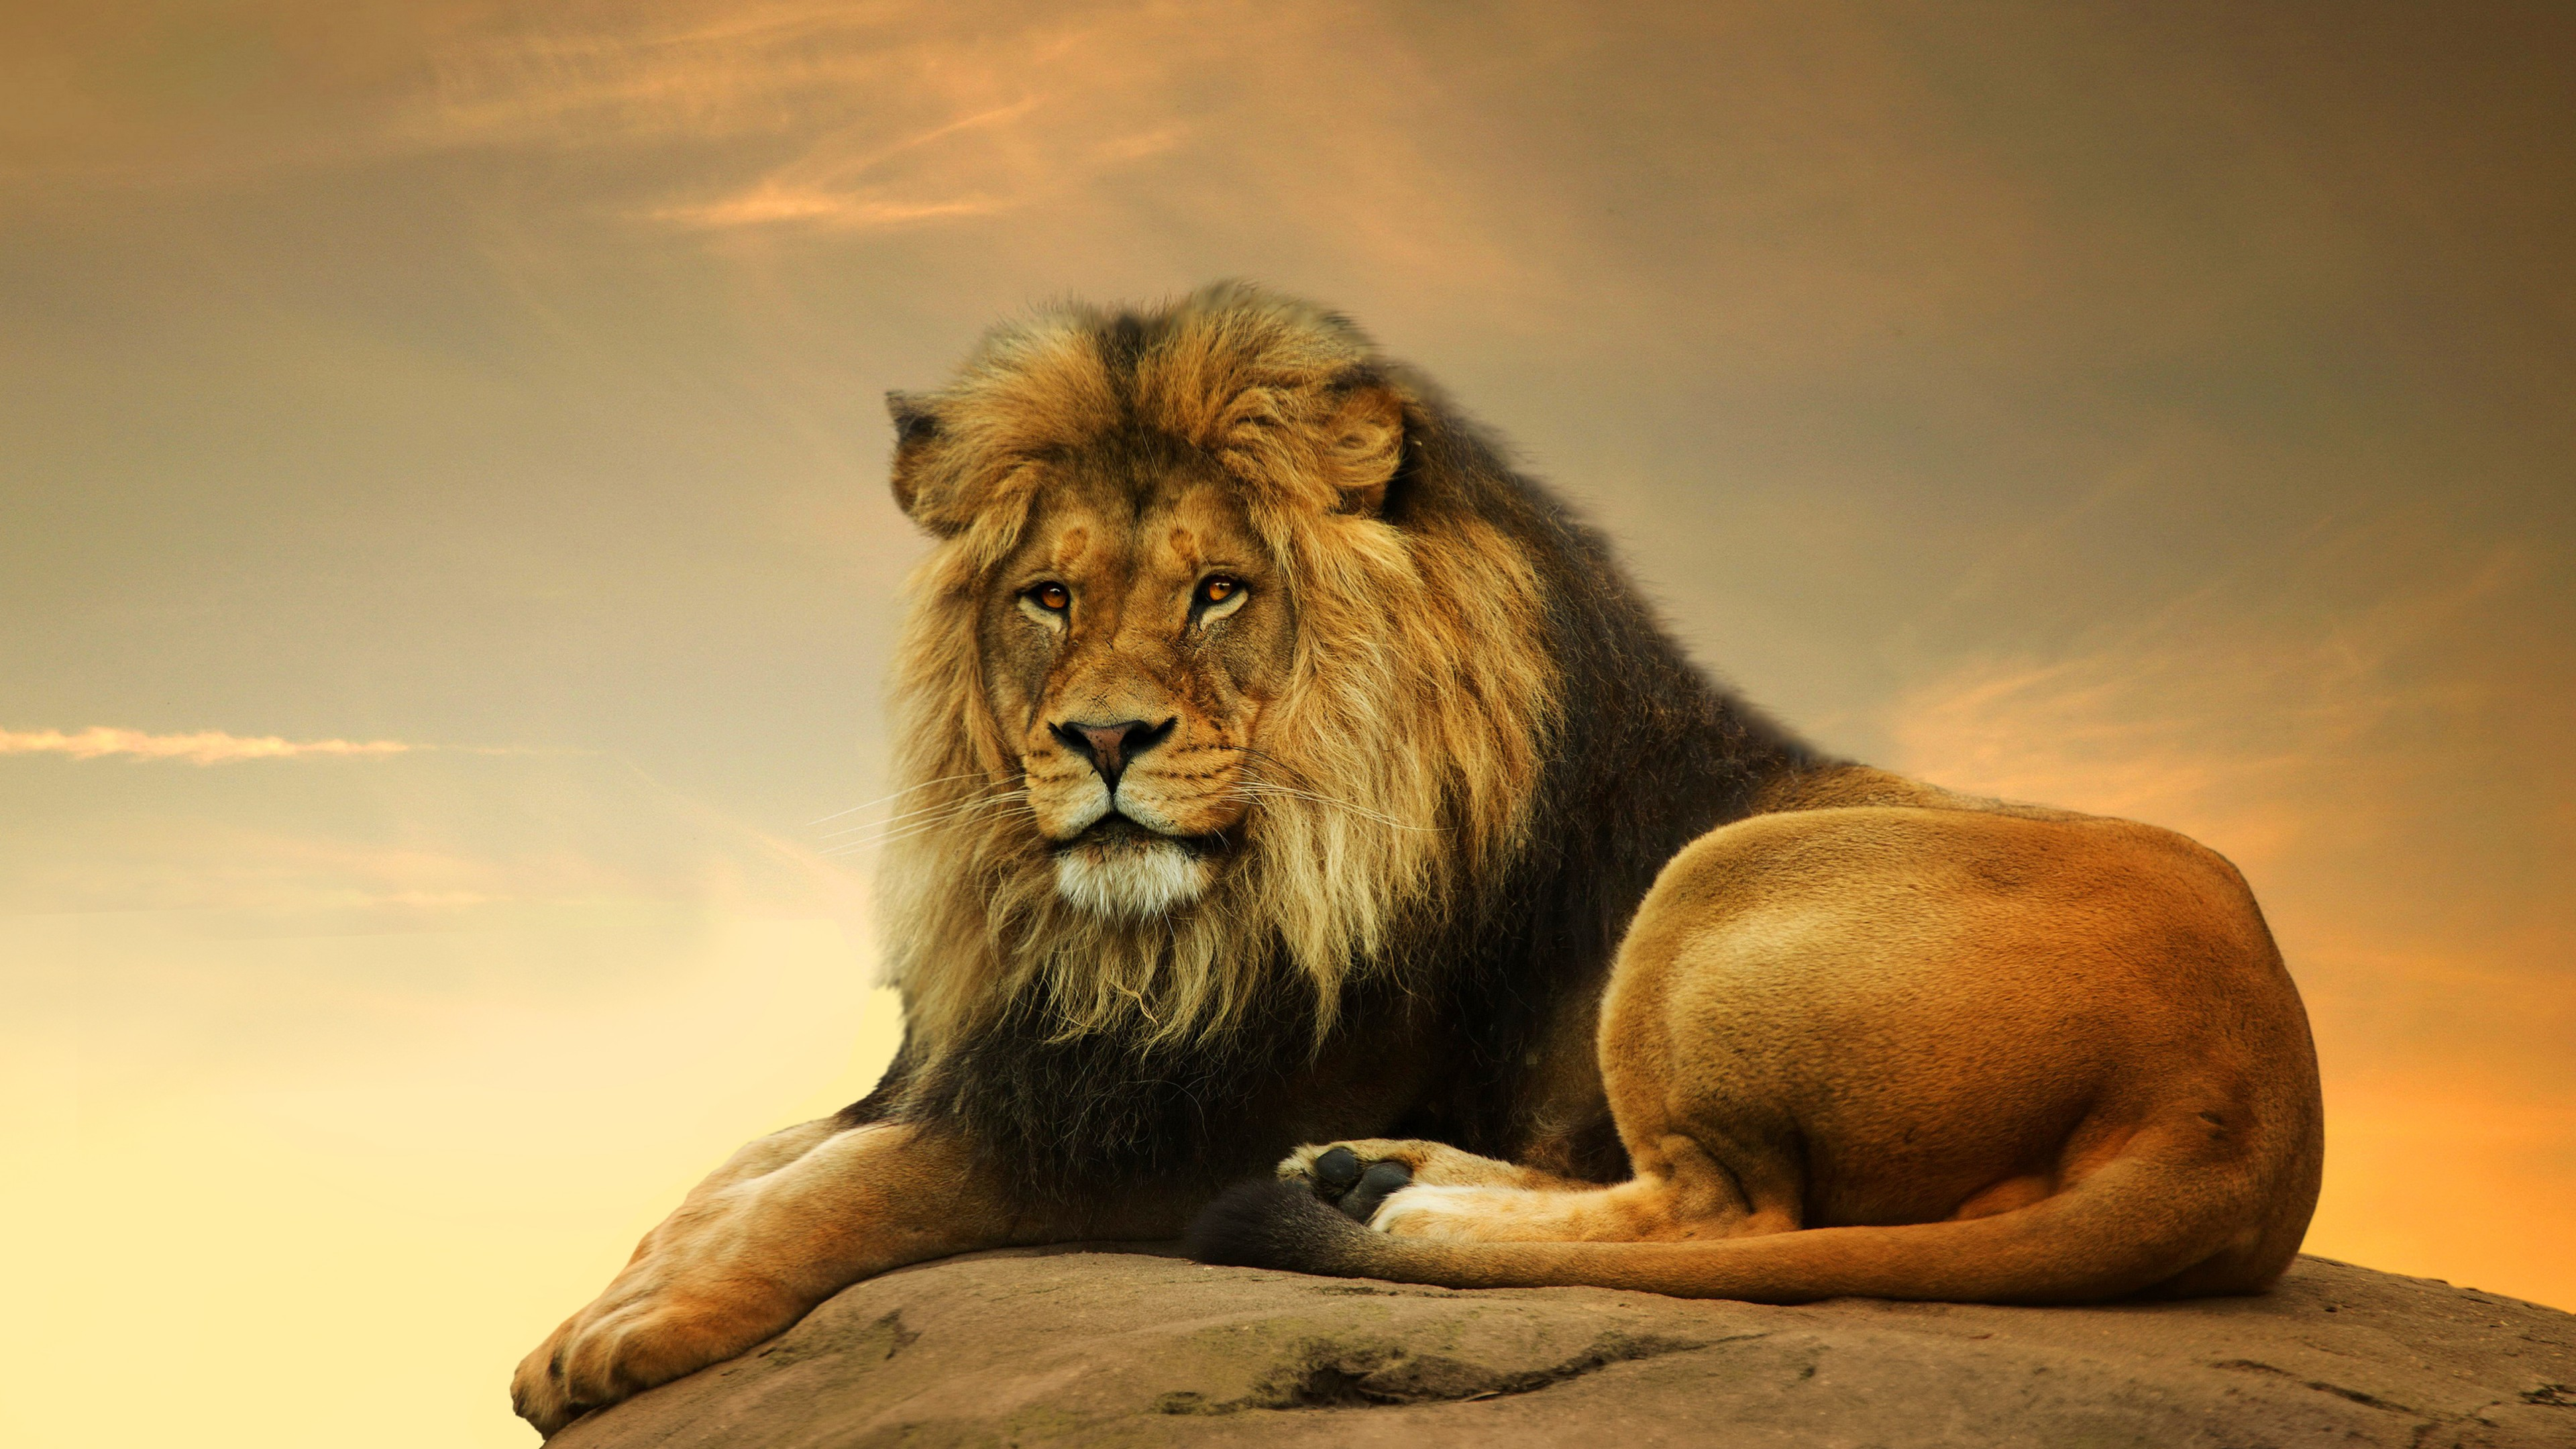 Wallpaper Lion Savanna Cute Animals Animals 4506